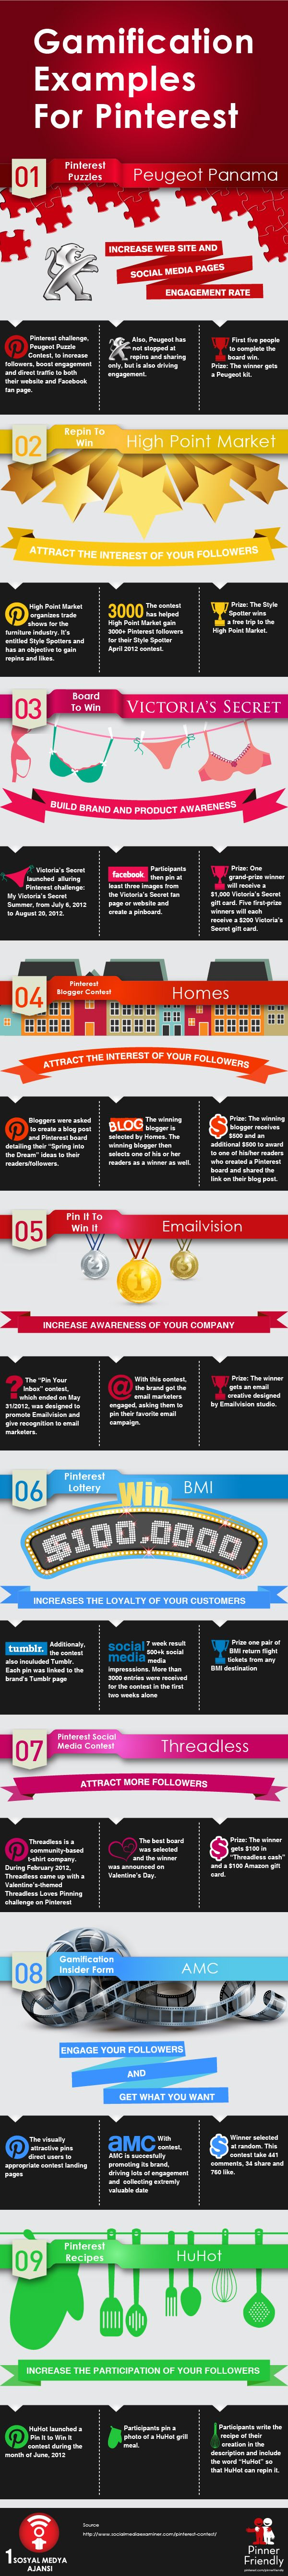 Gamification Examples for #Pinterest #Infographic